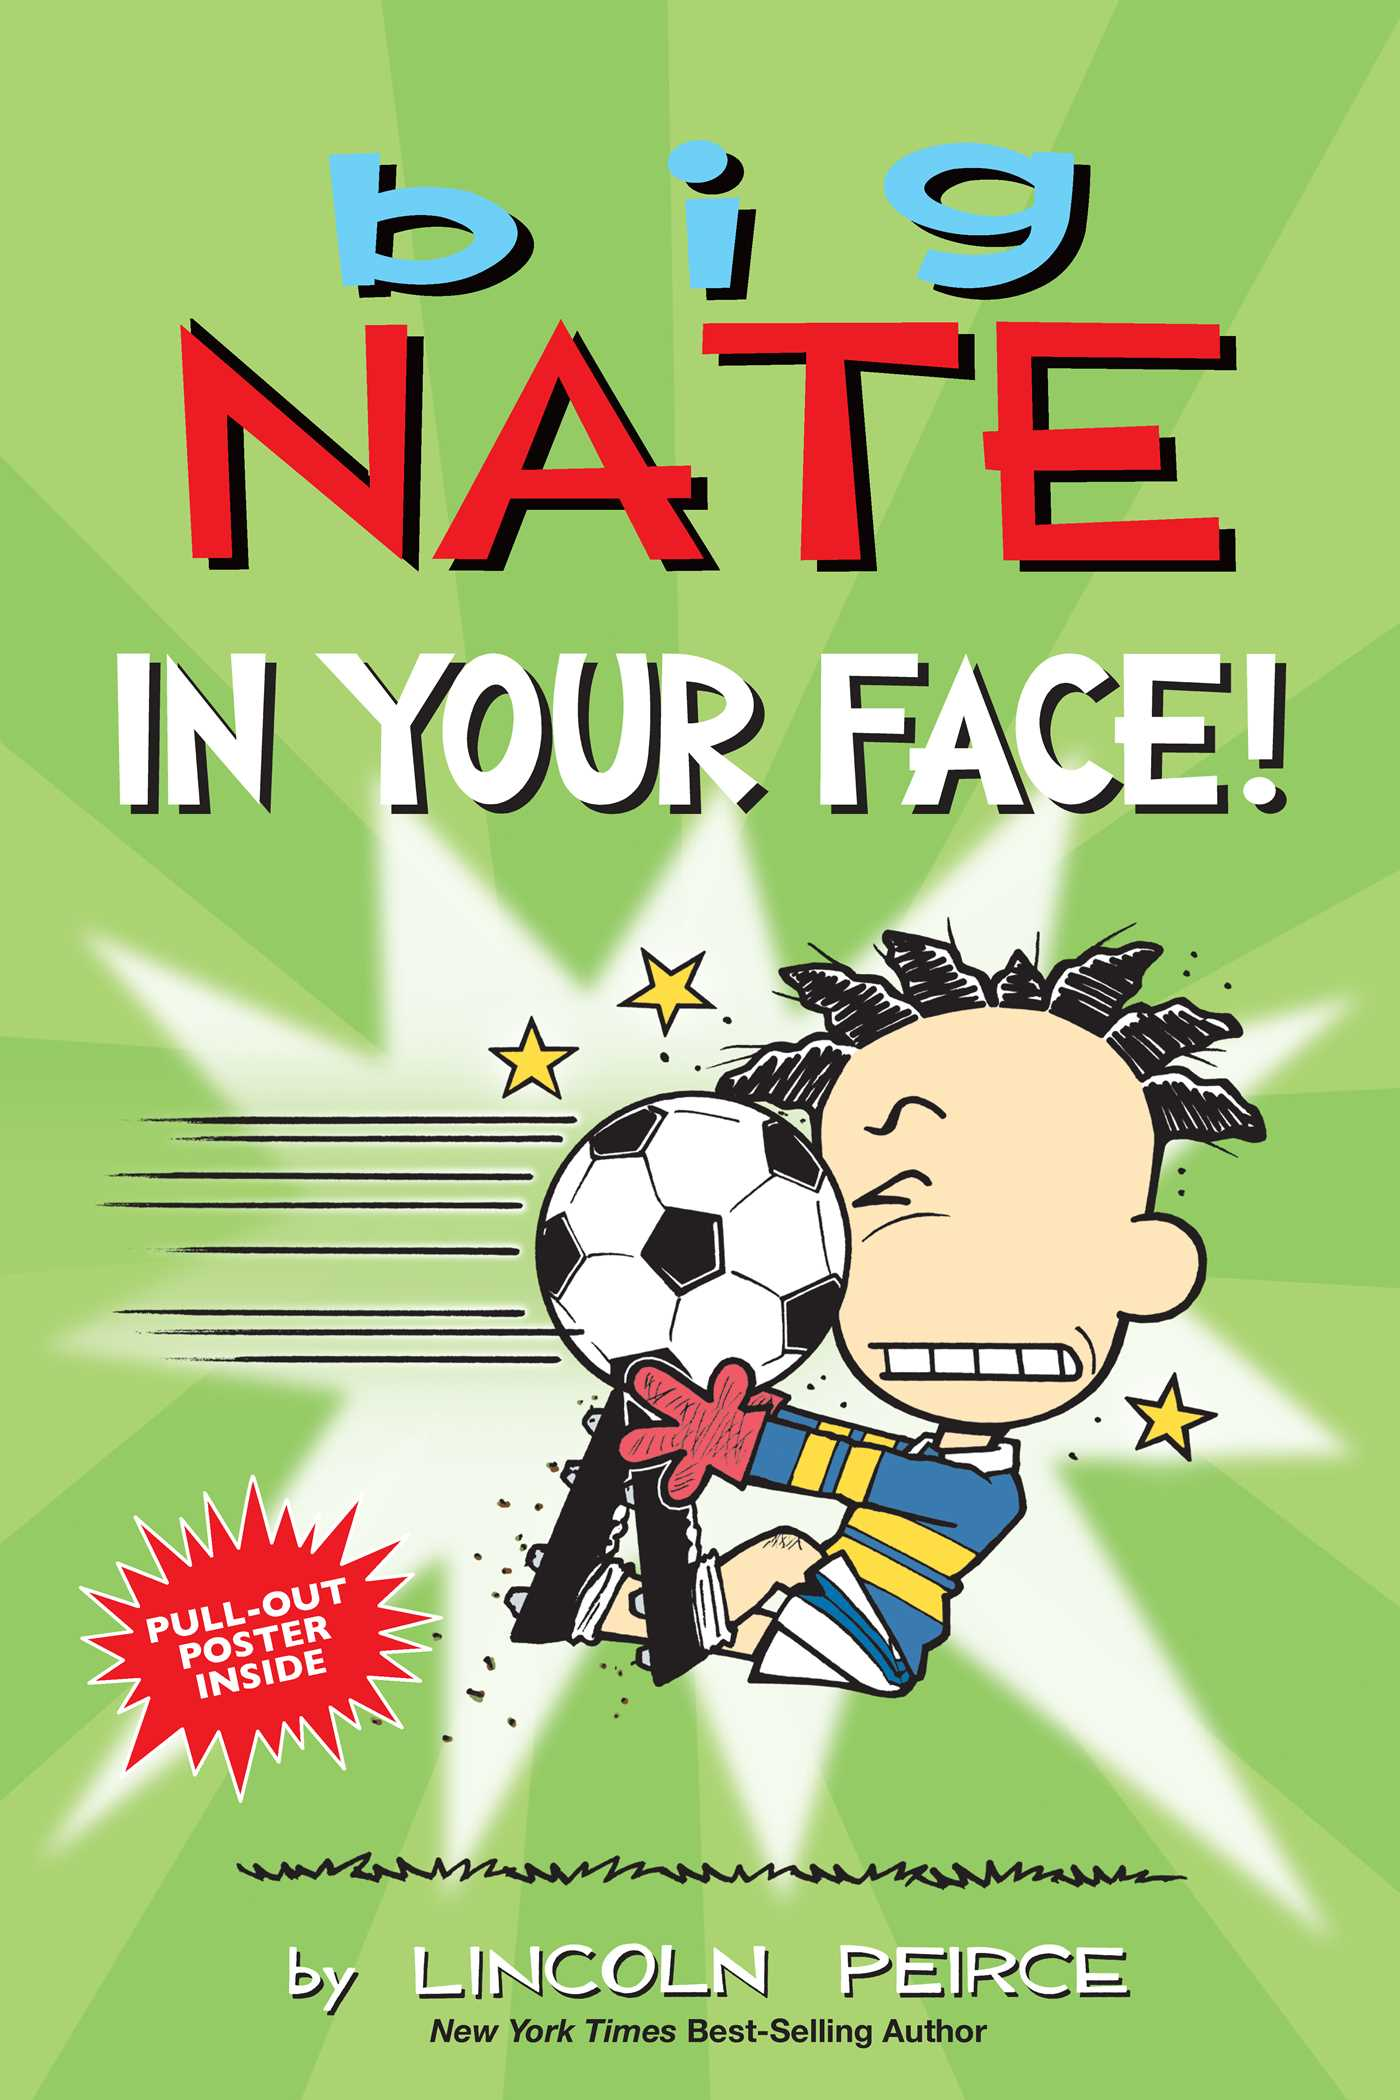 Big Nate: In Your Face!, Green, Soccer, Sports, Boy, Lincoln Peirce, Comics, Humour, Children's Books